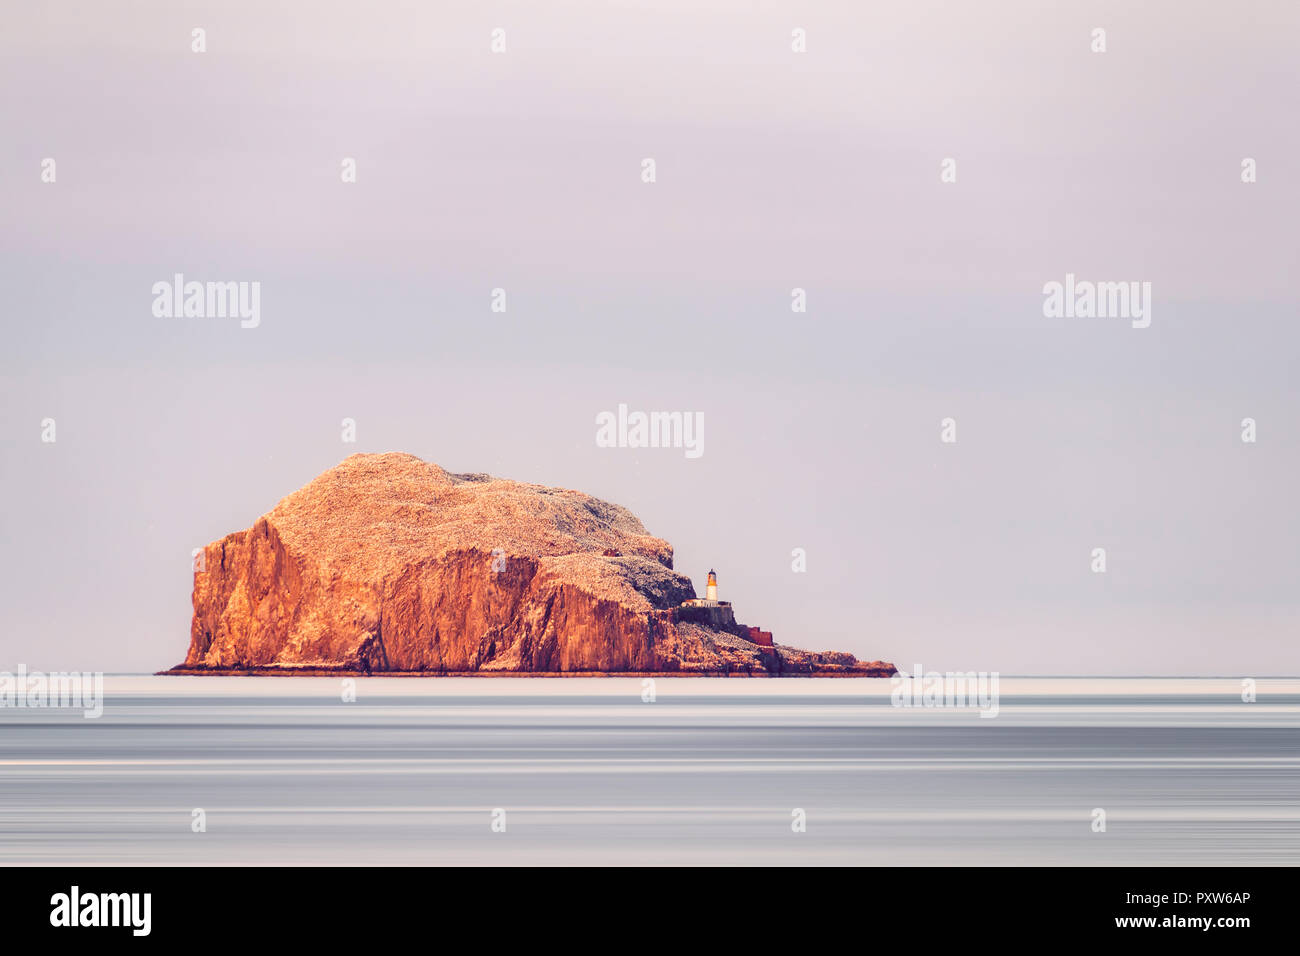 UK, Scotland, East Lothian, North Berwick, Firth of Forth, view of Bass Rock (world famous Gannet Colony), lit by the sunset, Lighthouse, Stock Photo